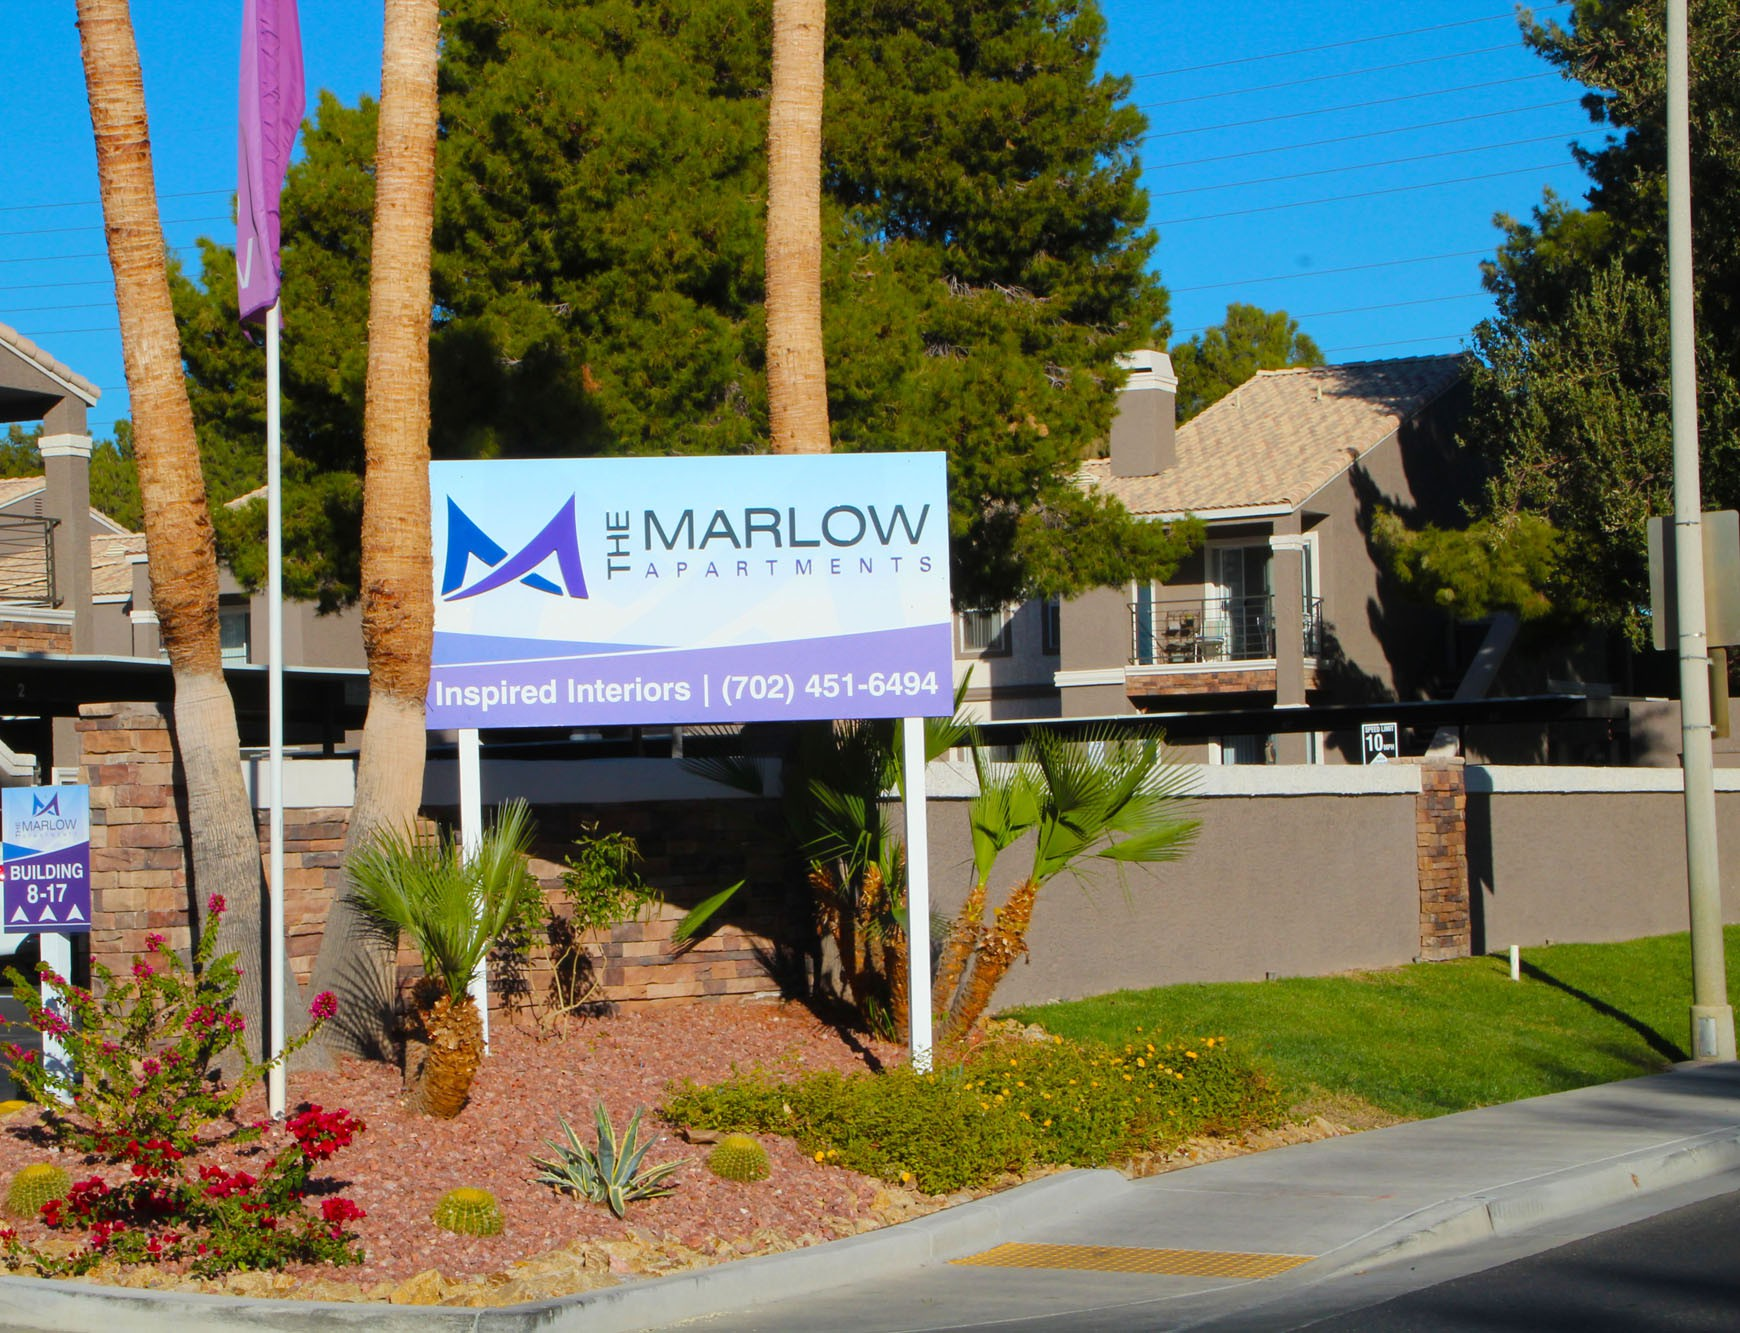 The Marlow Apartments